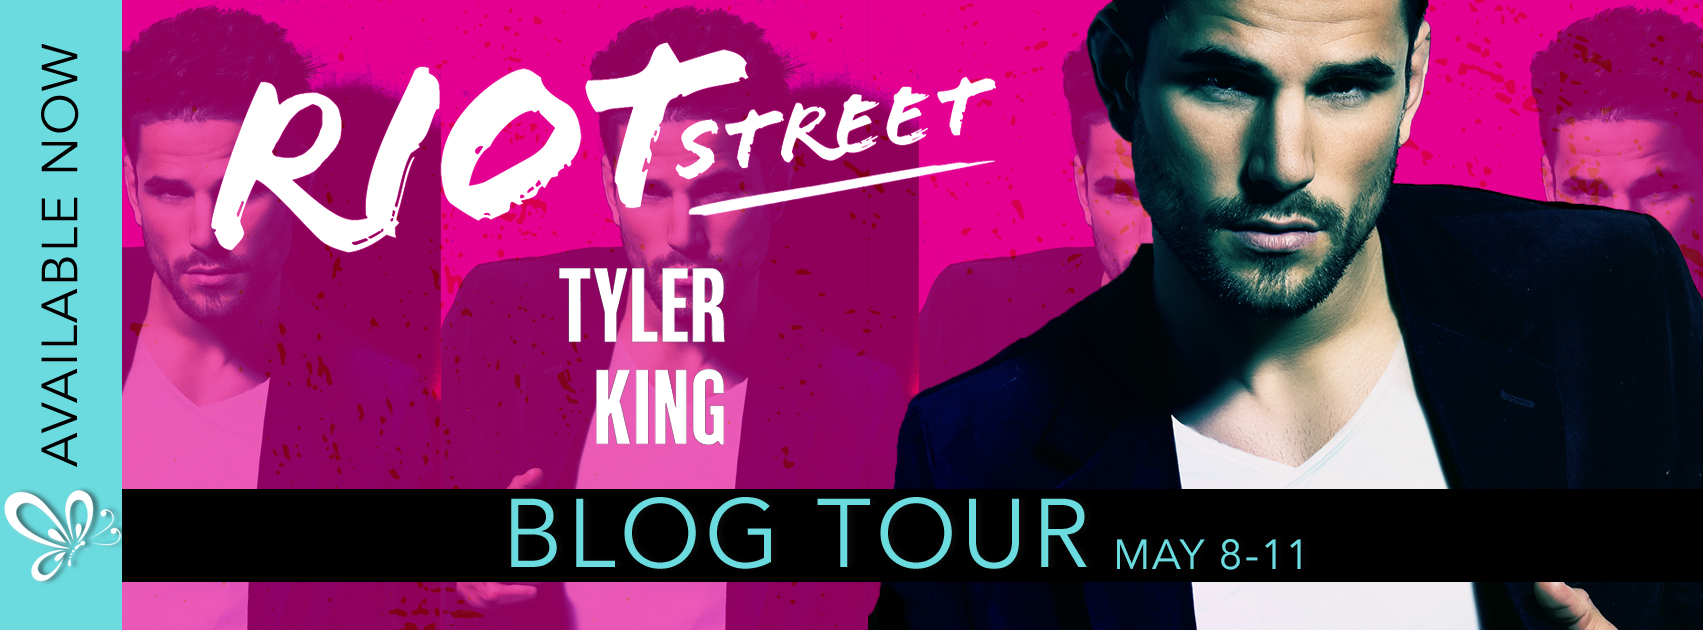 Blog Tour: Riot Street by Tyler King